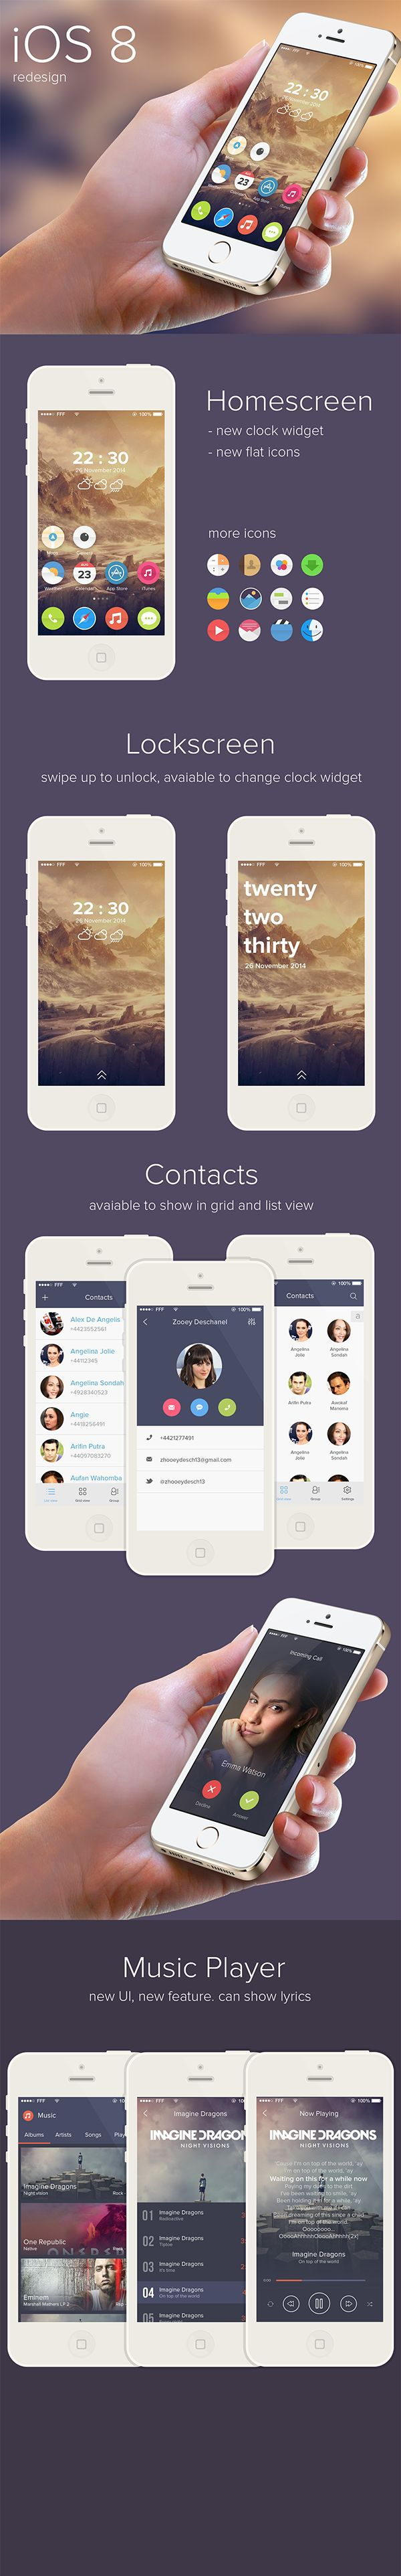 iOS 8 redesign by Ghani Pradita, via Behance